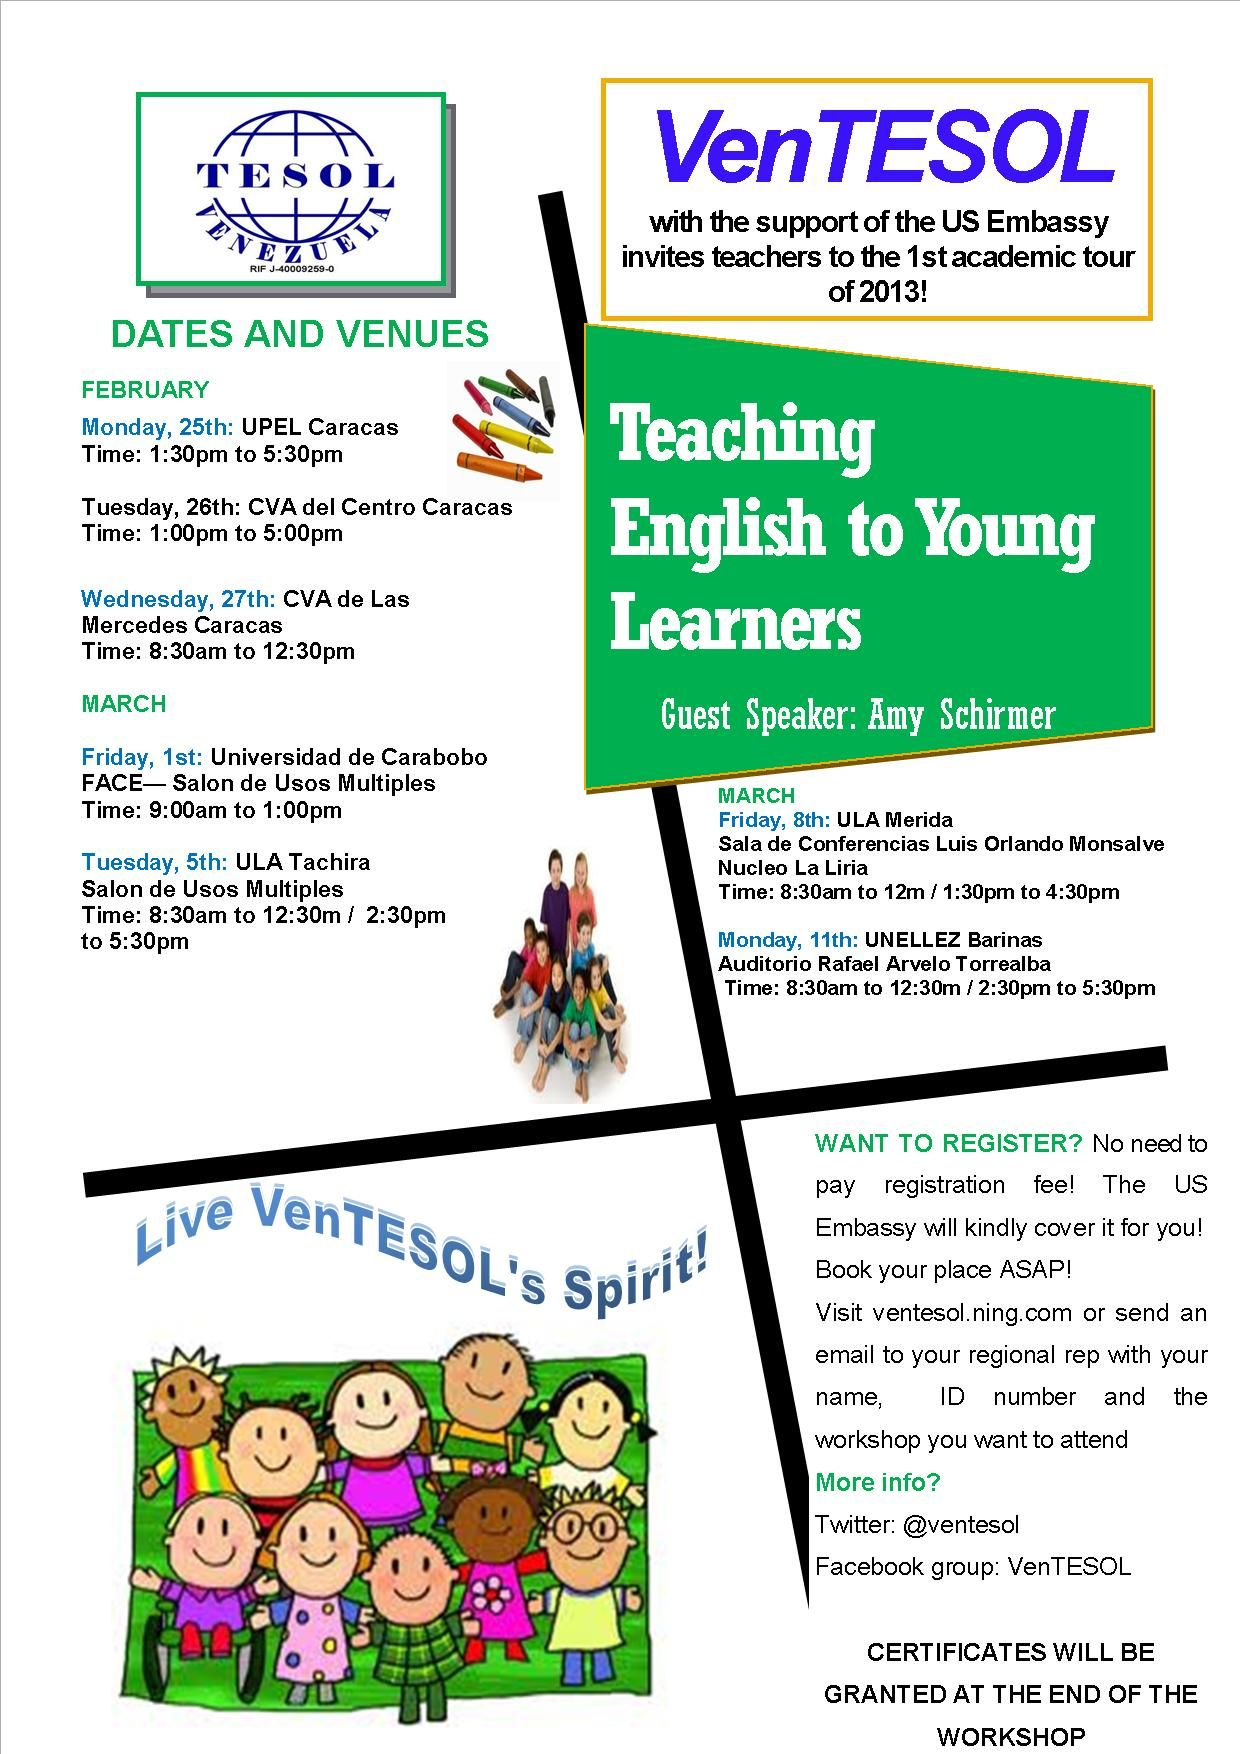 VenTESOL invites to its 1st academic tour of 2013: Teaching English to Young Learners.   Guest speaker: Amy Schirmer    *Feb. 25th: UPEL - IPC, Caracas  *Feb. 26th: CVA del Centro, Caracas  *Feb. 27th: CVA de Las Mercedes, Caracas  *March 1st: Universidad de Carabobo, Valencia  *March 5th (Tuesday): ULA Tachira  *March 8th (Friday): ULA Merida  *March 11th: UNELLEZ Barinas    To book your seat, join our Ning http://ventesol.ning.com/.